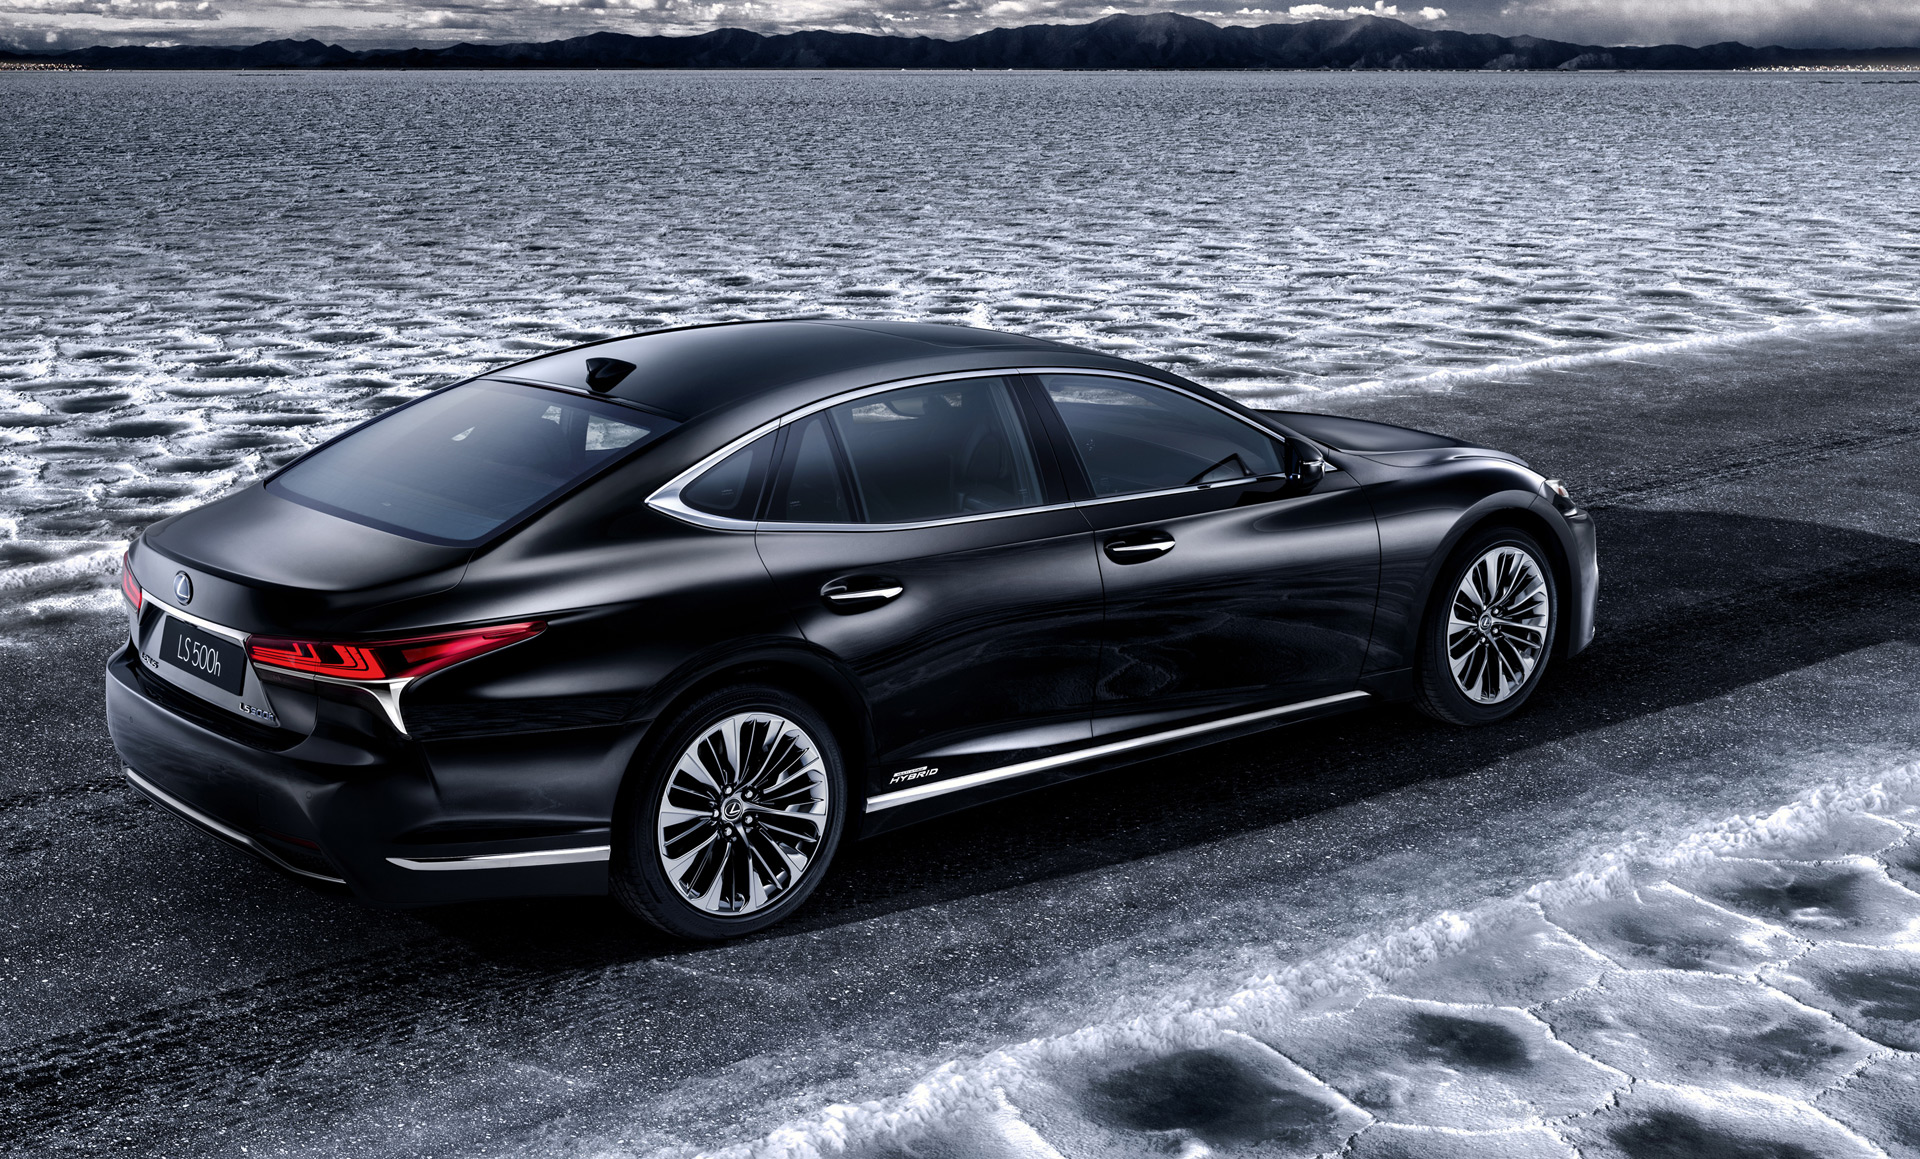 2018 lexus ls 500h hybrid luxury sedan to debut at geneva show. Black Bedroom Furniture Sets. Home Design Ideas